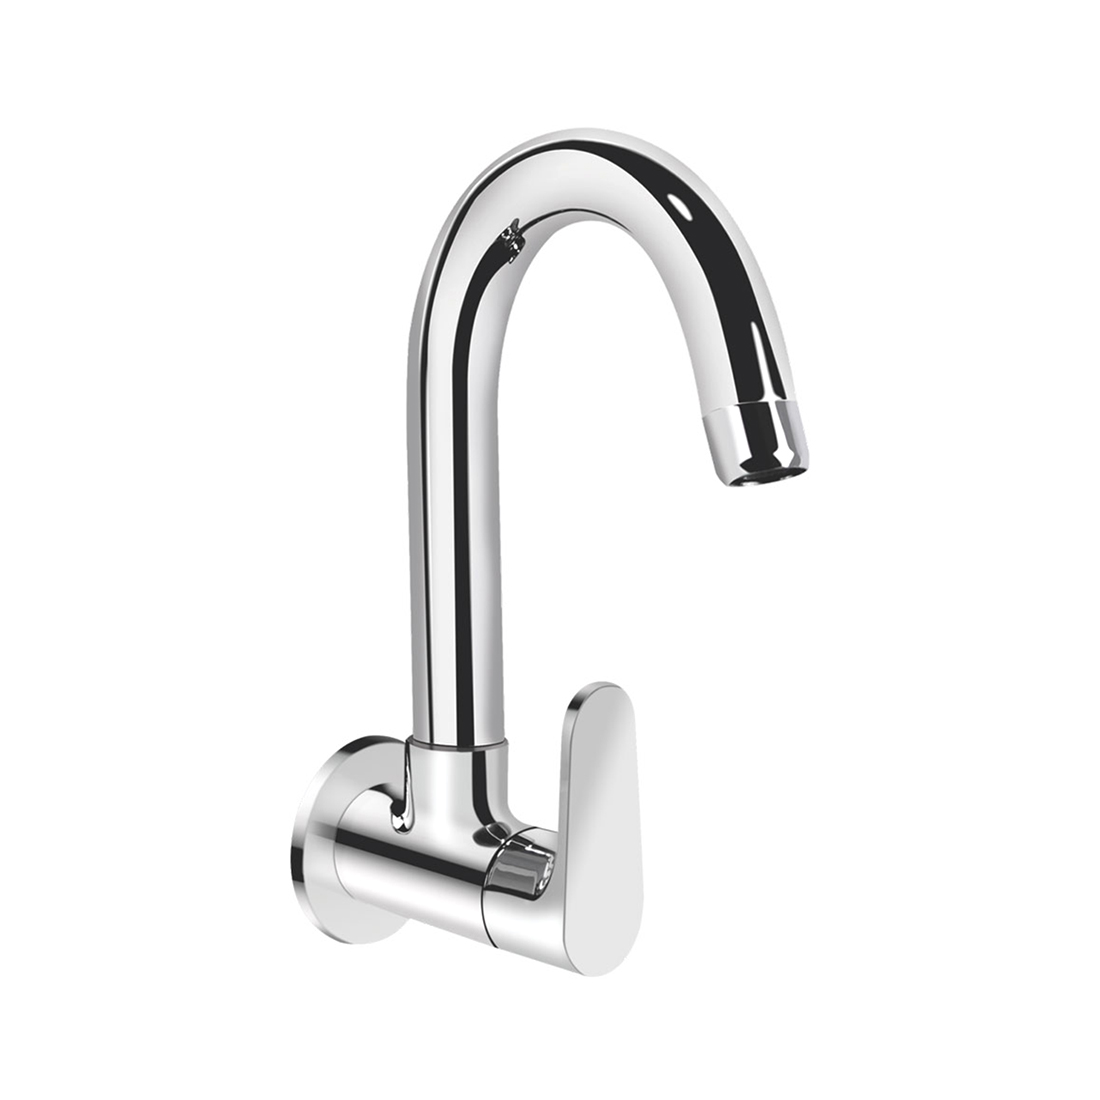 Kerovit Hydrus KB411025 Sink Cock With Swivel Spout and Flange